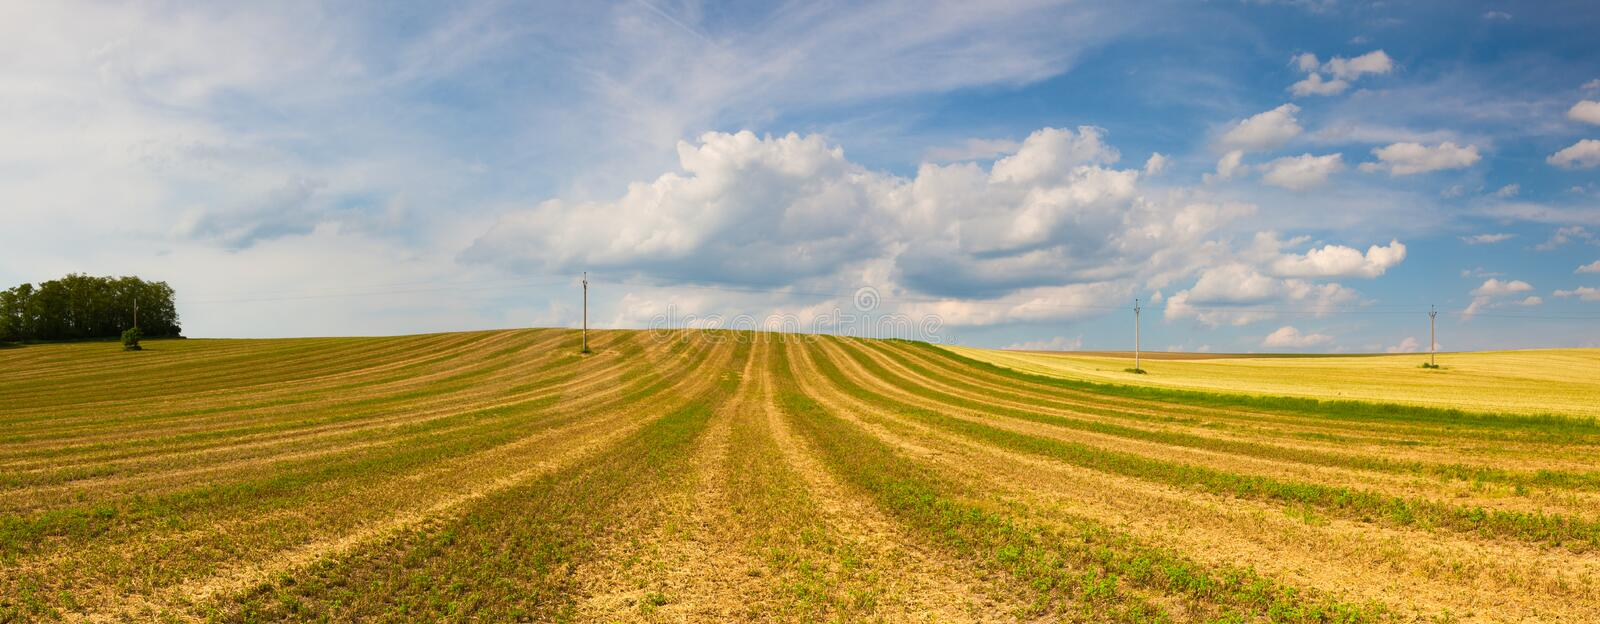 Harvested empty field on the hills. At sunset.Panorama picture royalty free stock photography